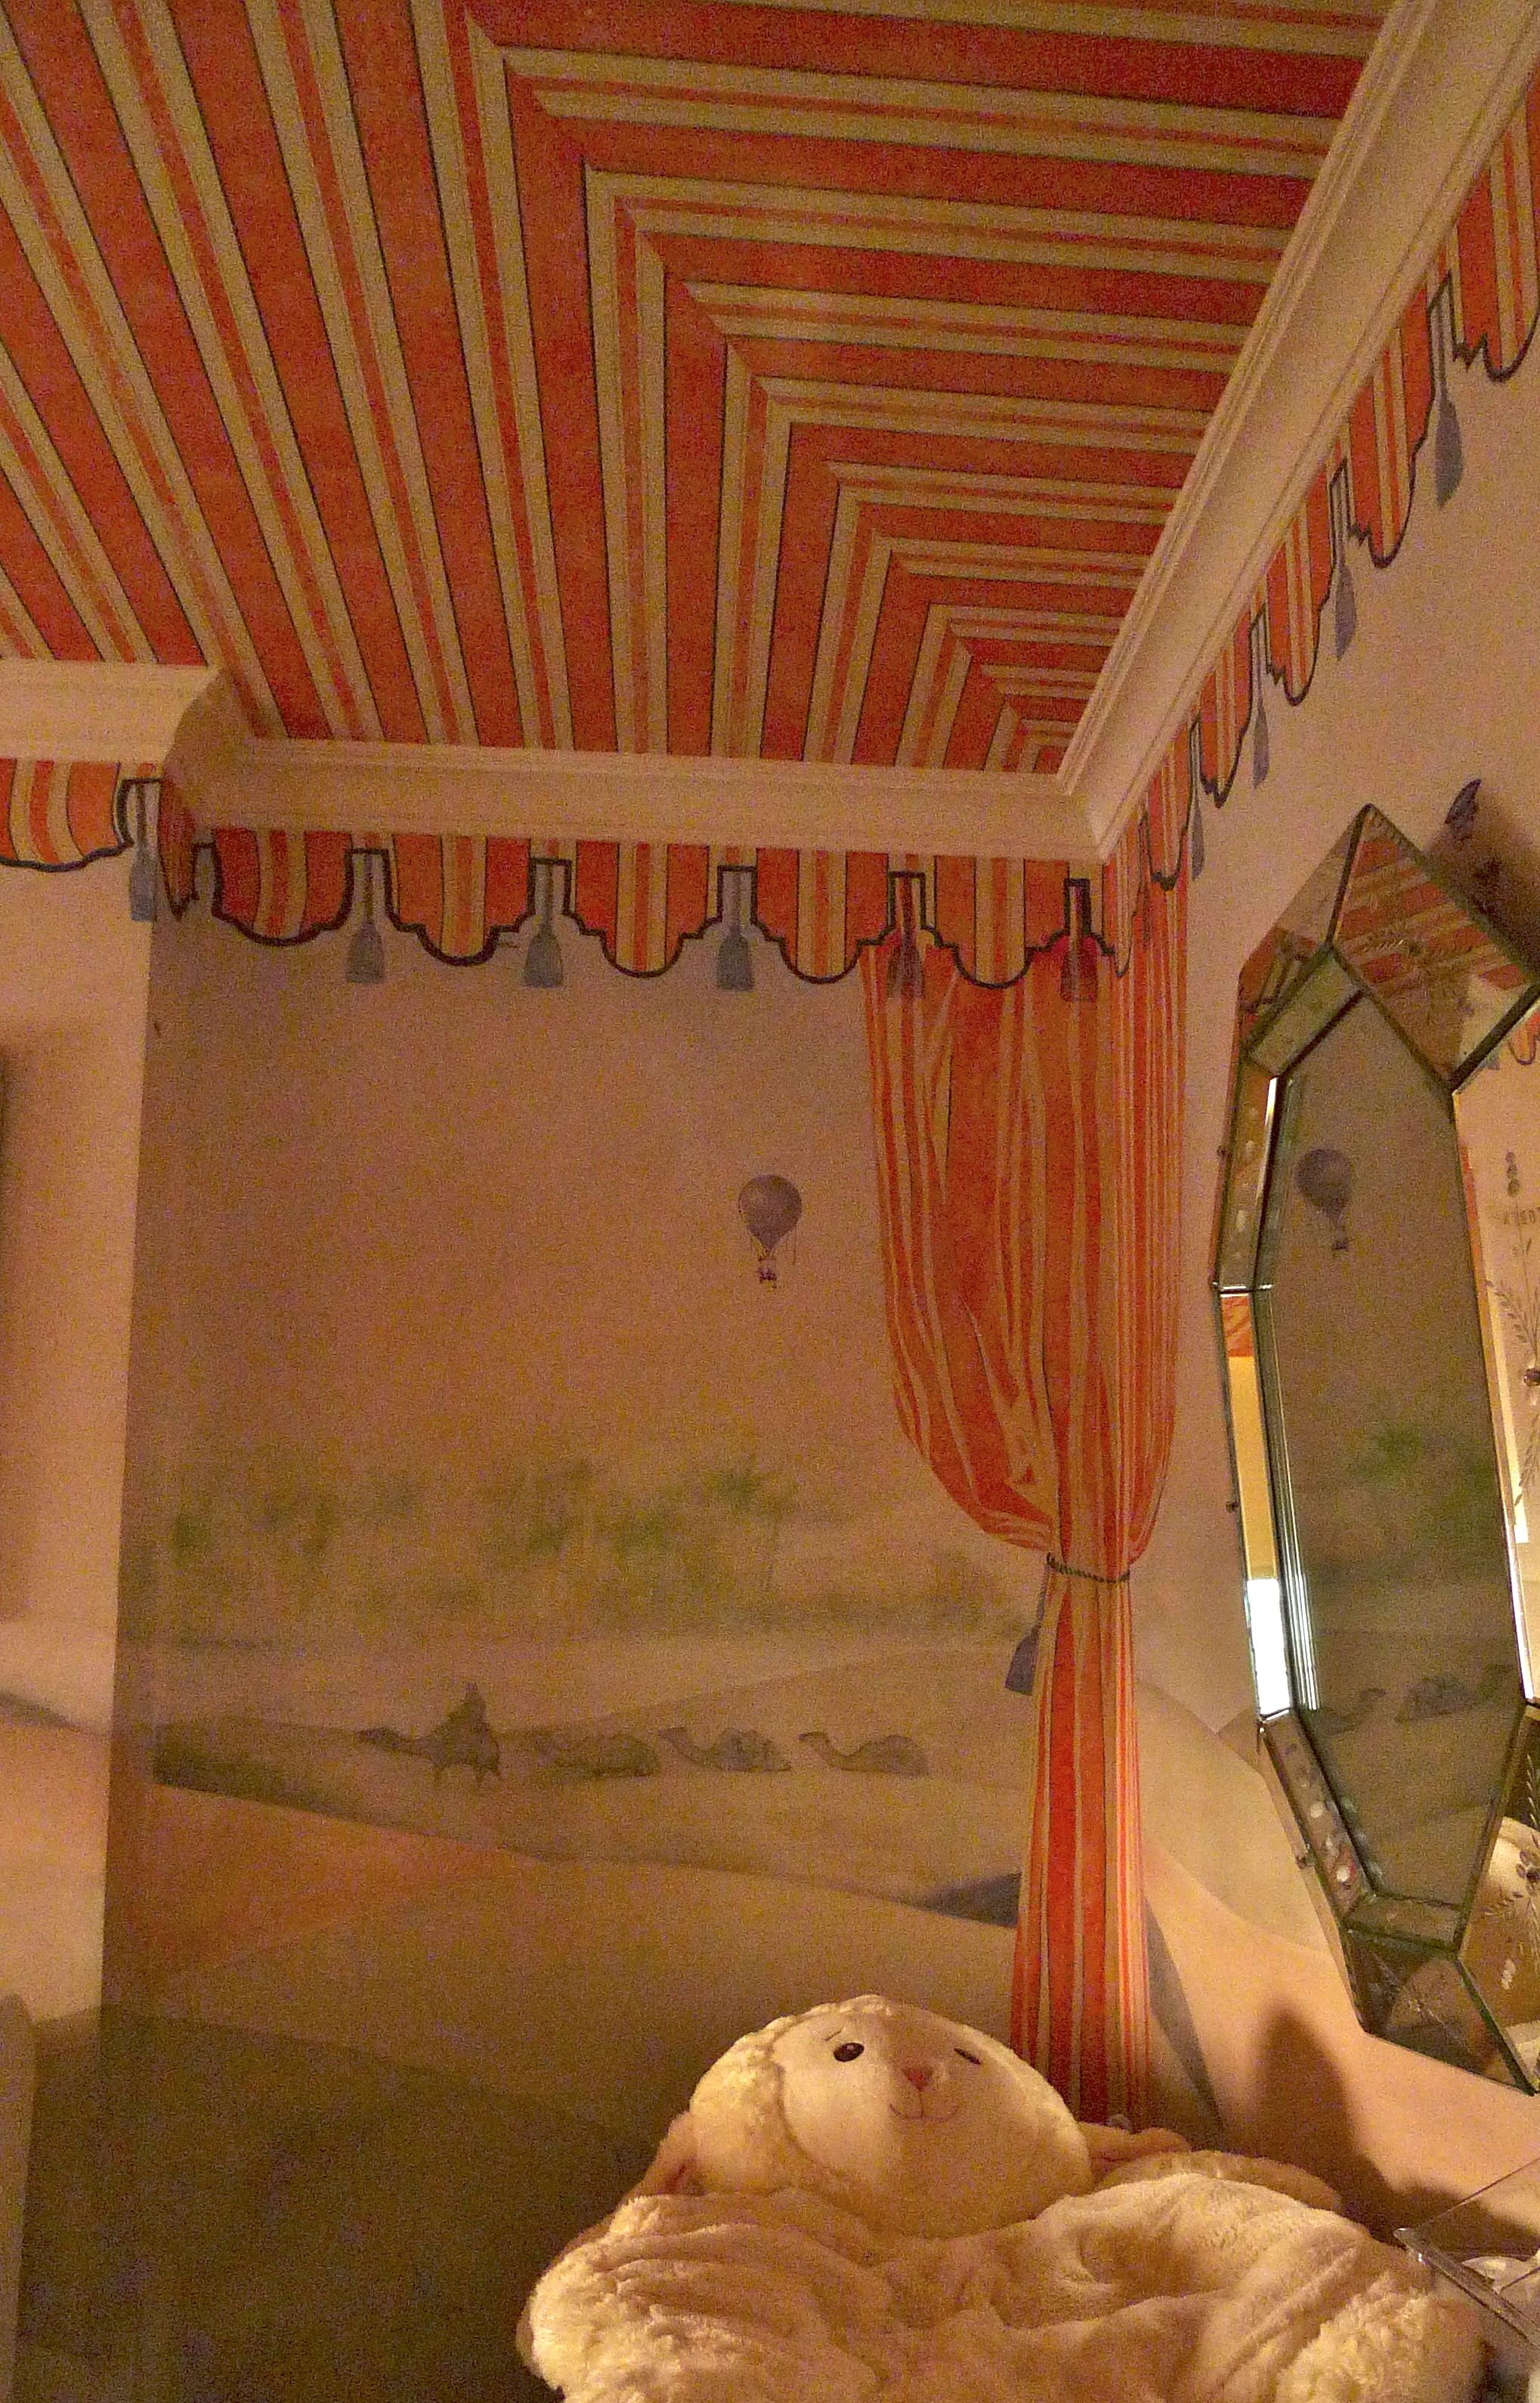 Super Cute And Playful Circus Tent Ceiling With Serious Mural